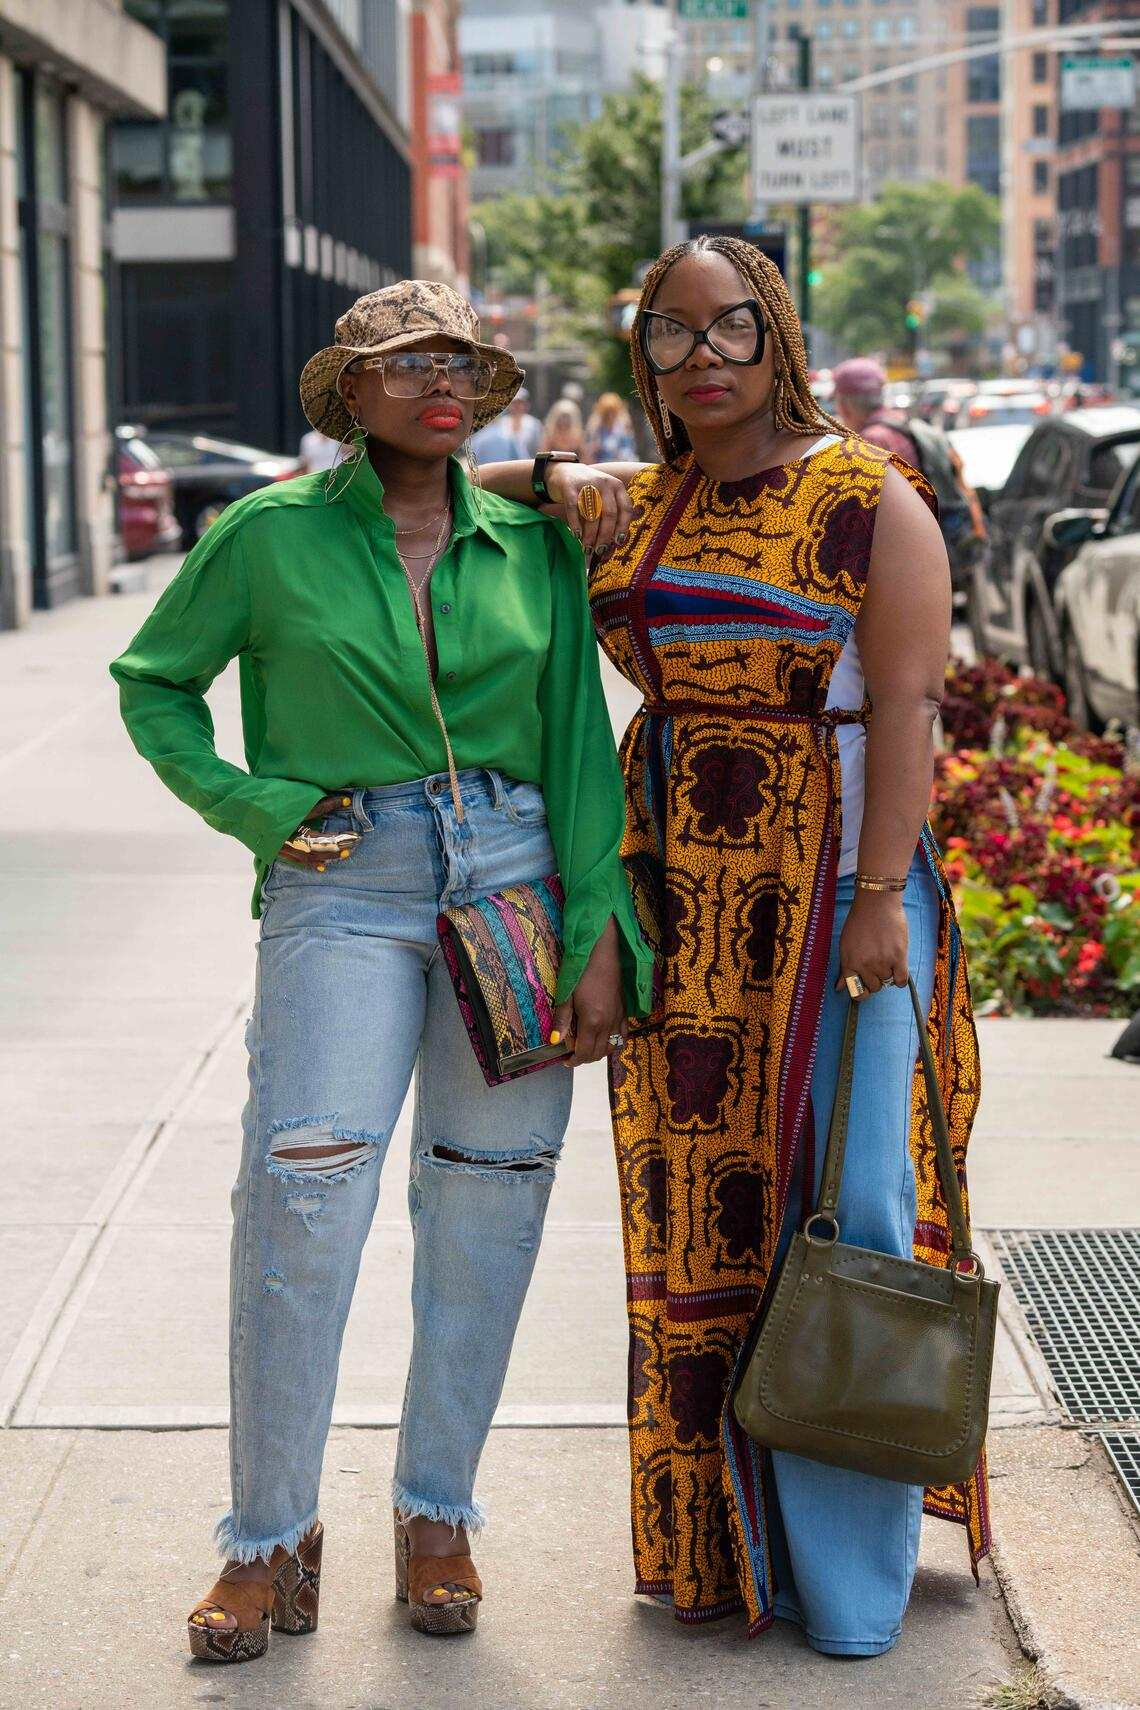 NEW YORK, NY - SEPTEMBER 08: Medgine Williams (L) and Natea Williams founders of Pardon Our Style at Spring Studios on September 8, 2019 in New York City. (Photo by David Dee Delgado/Getty Images)